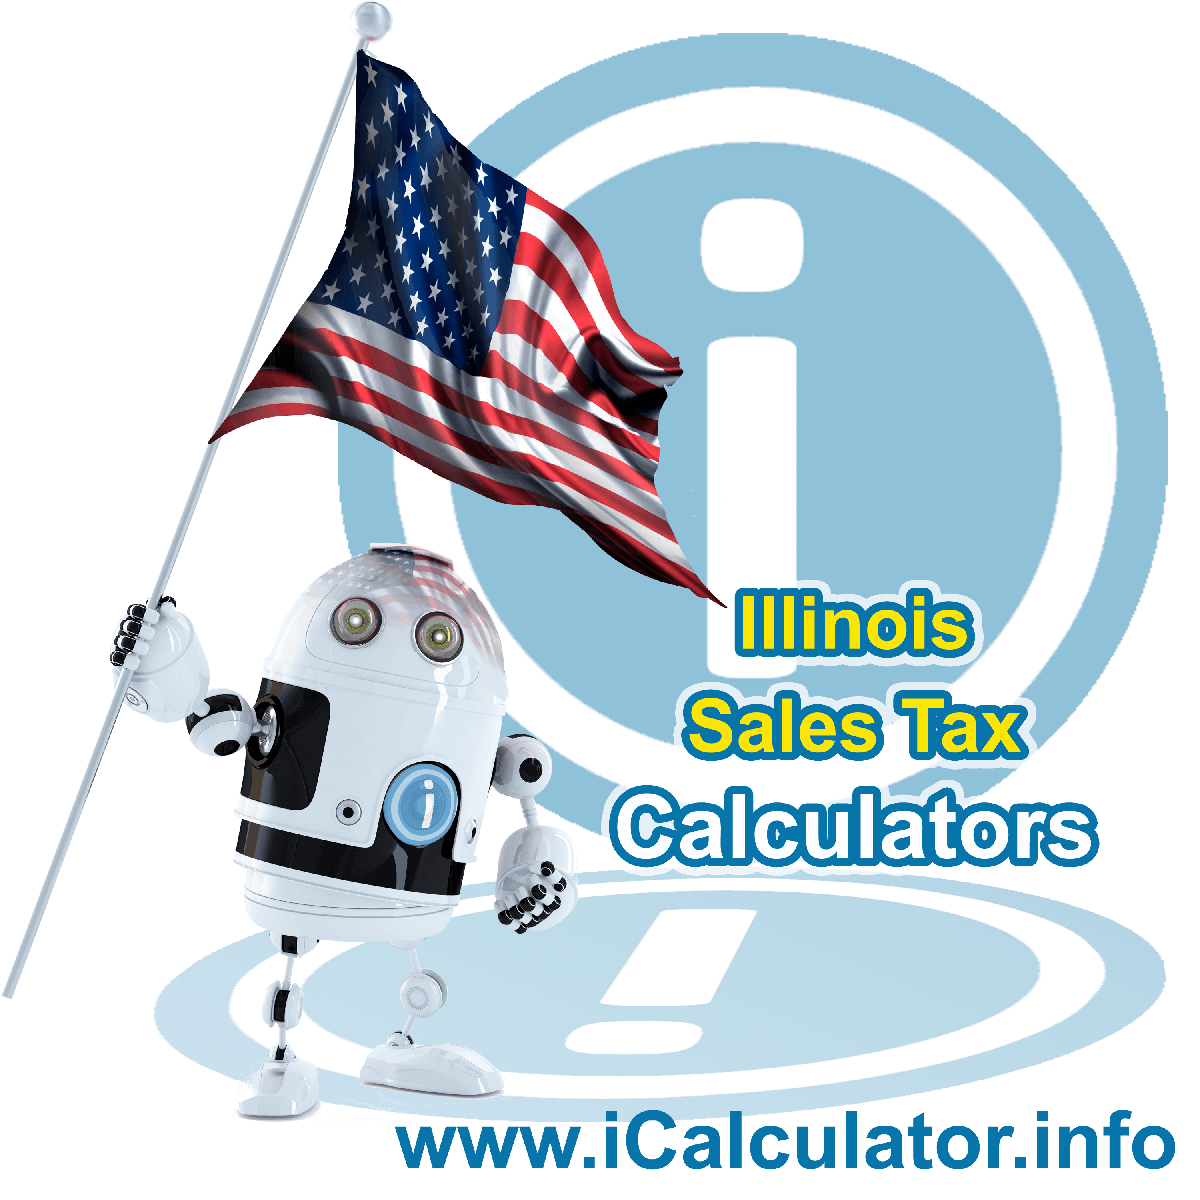 Malden Sales Rates: This image illustrates a calculator robot calculating Malden sales tax manually using the Malden Sales Tax Formula. You can use this information to calculate Malden Sales Tax manually or use the Malden Sales Tax Calculator to calculate sales tax online.